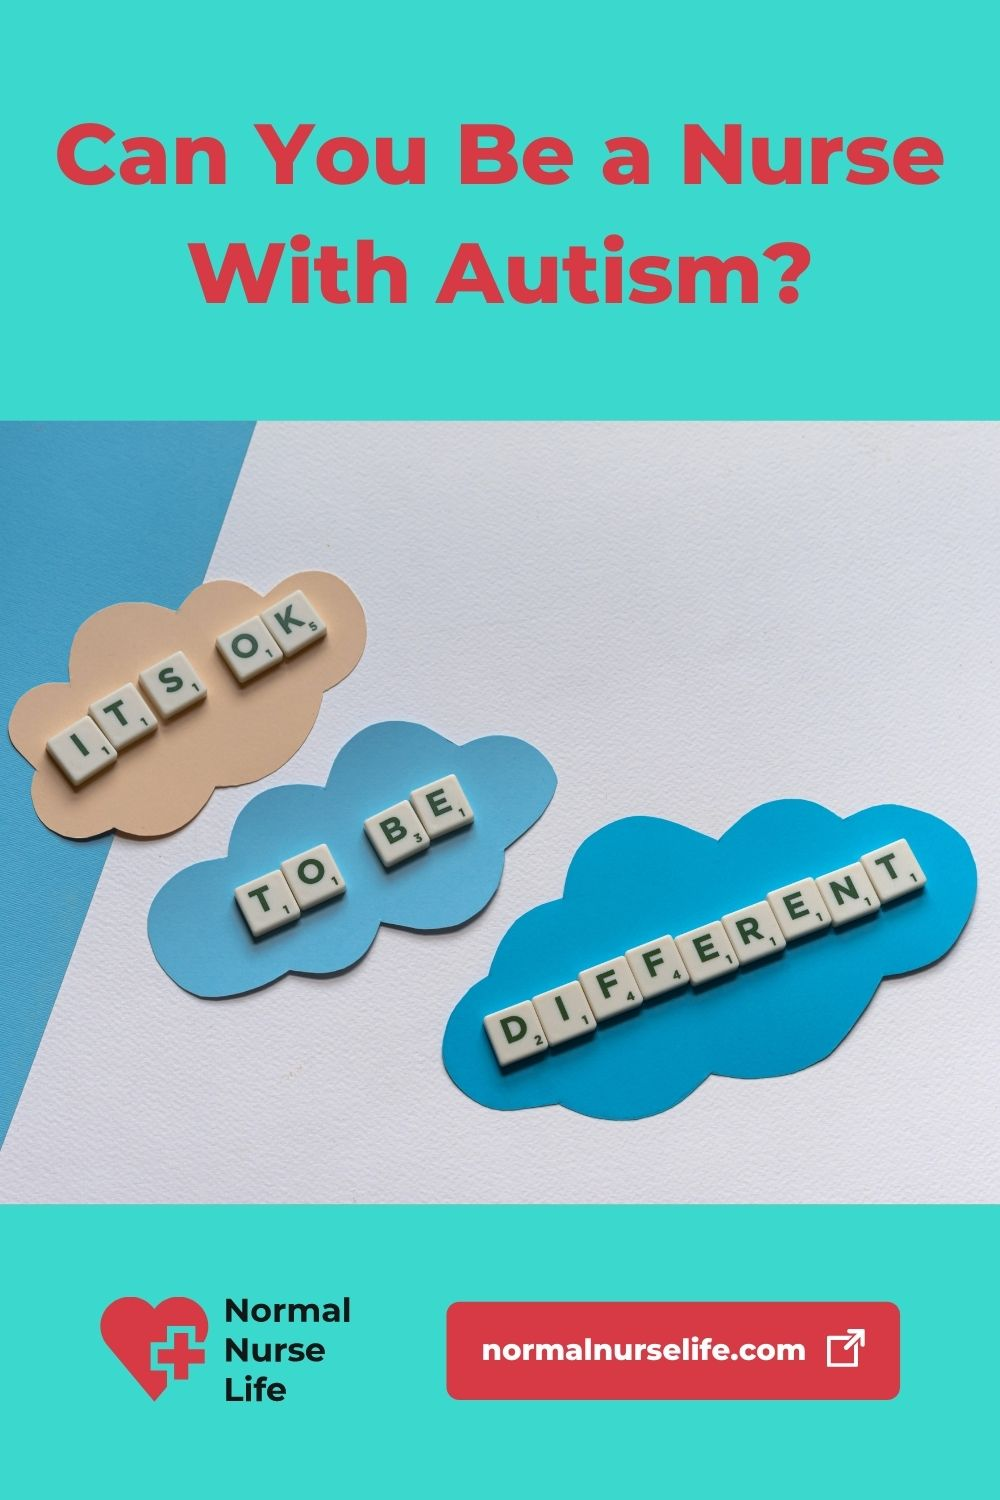 Can you be a nurse with autism